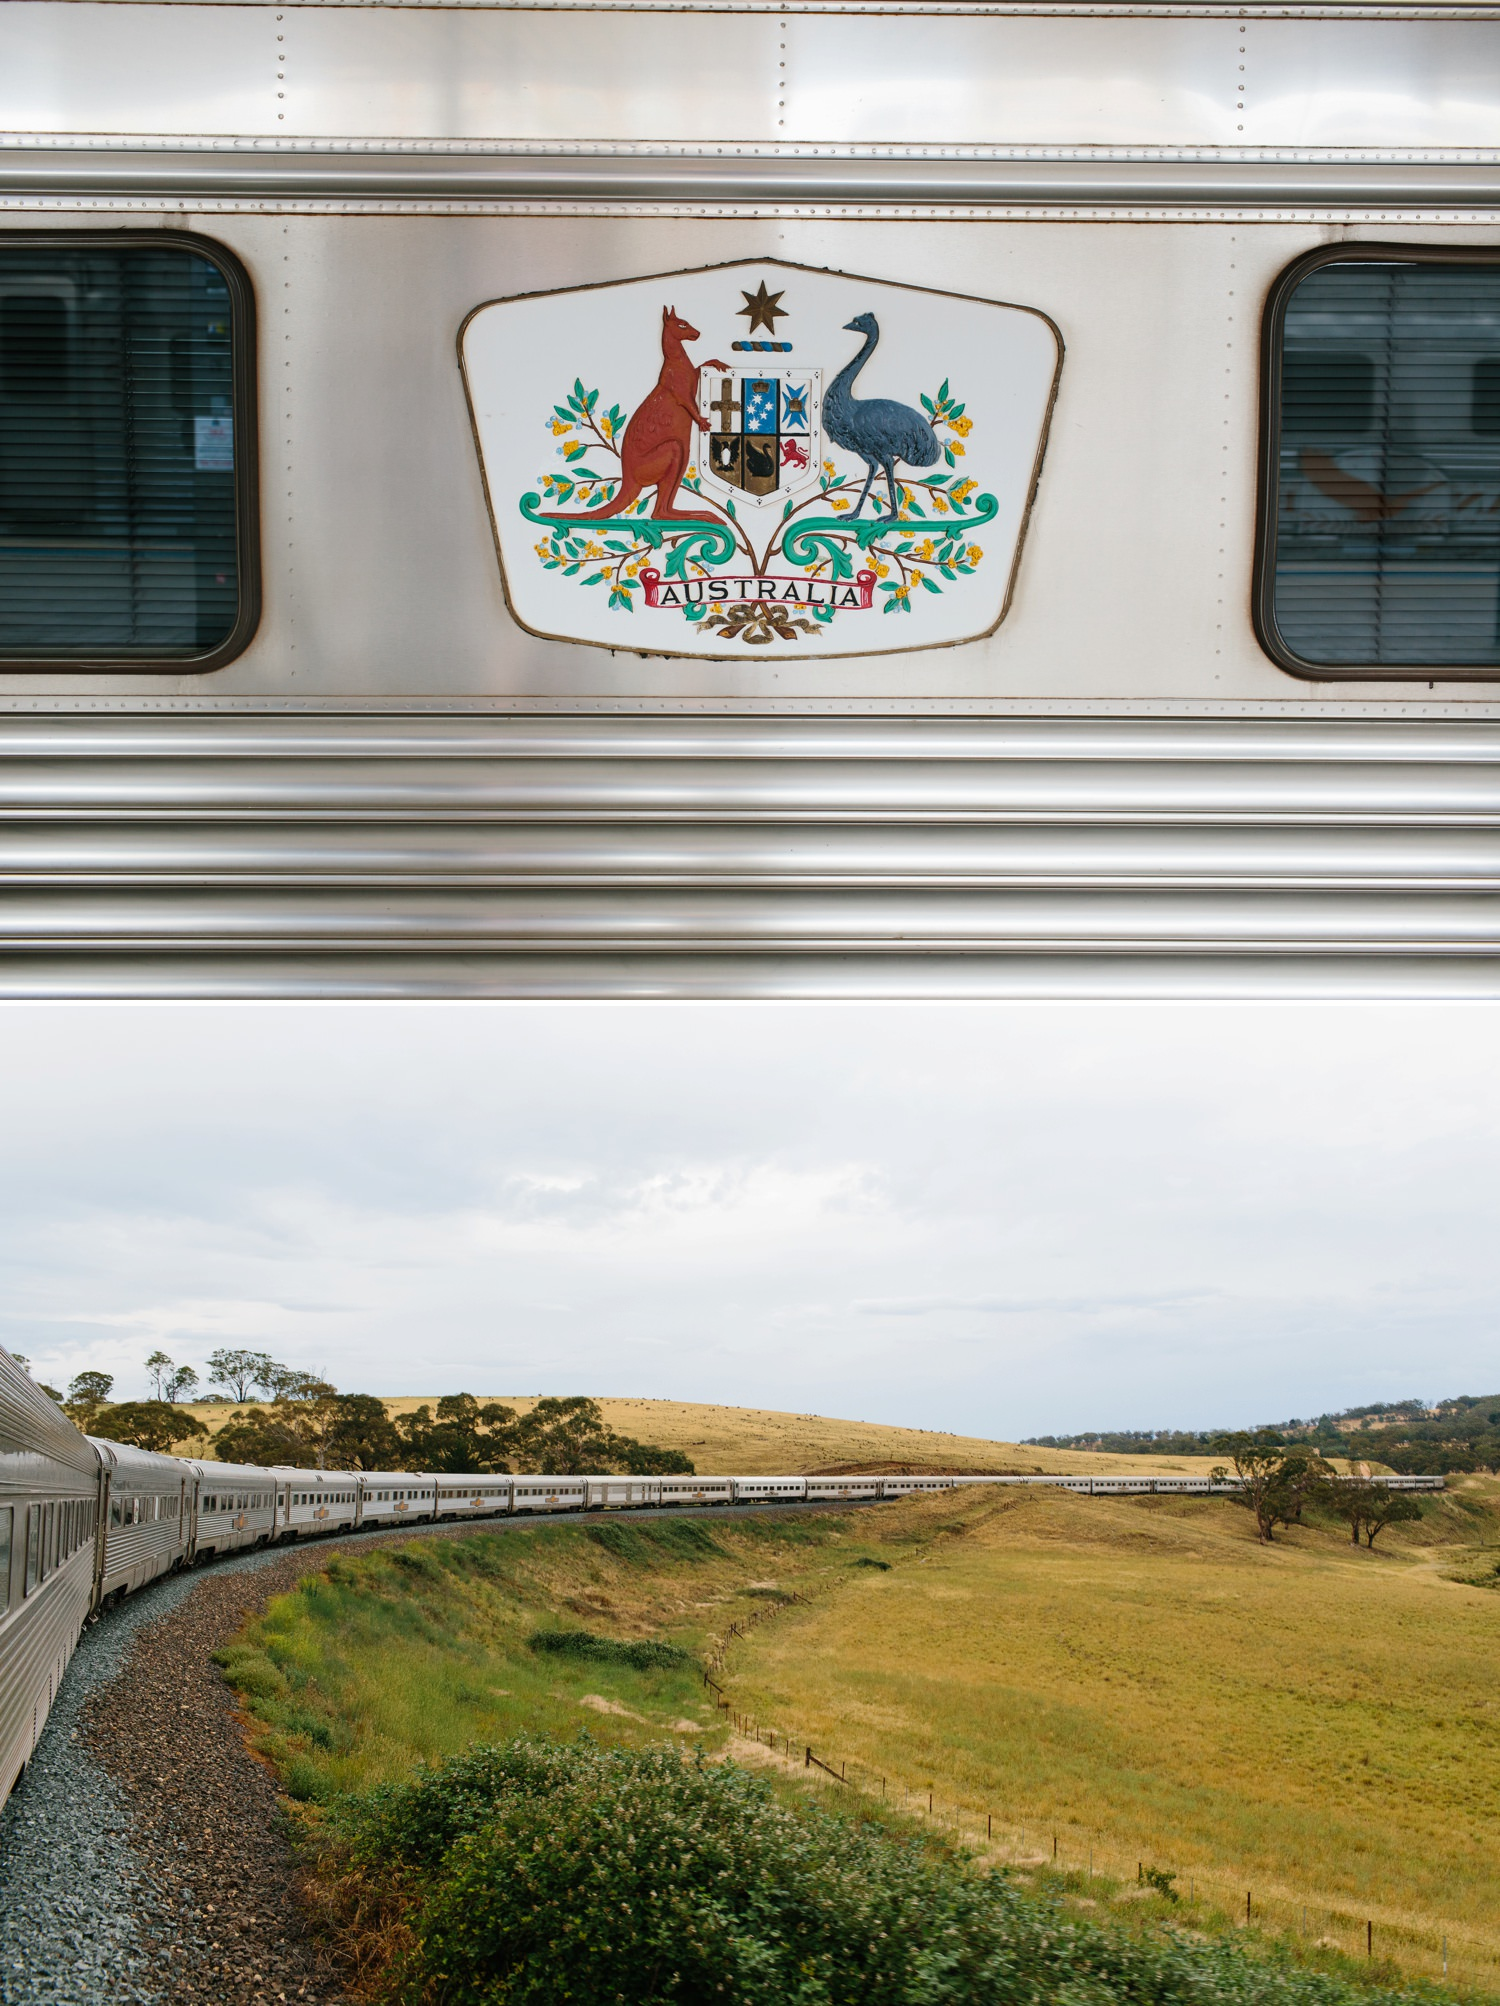 cameron-zegers-photographer-seattle-travel-australia-great-southern-rail_0002.jpg